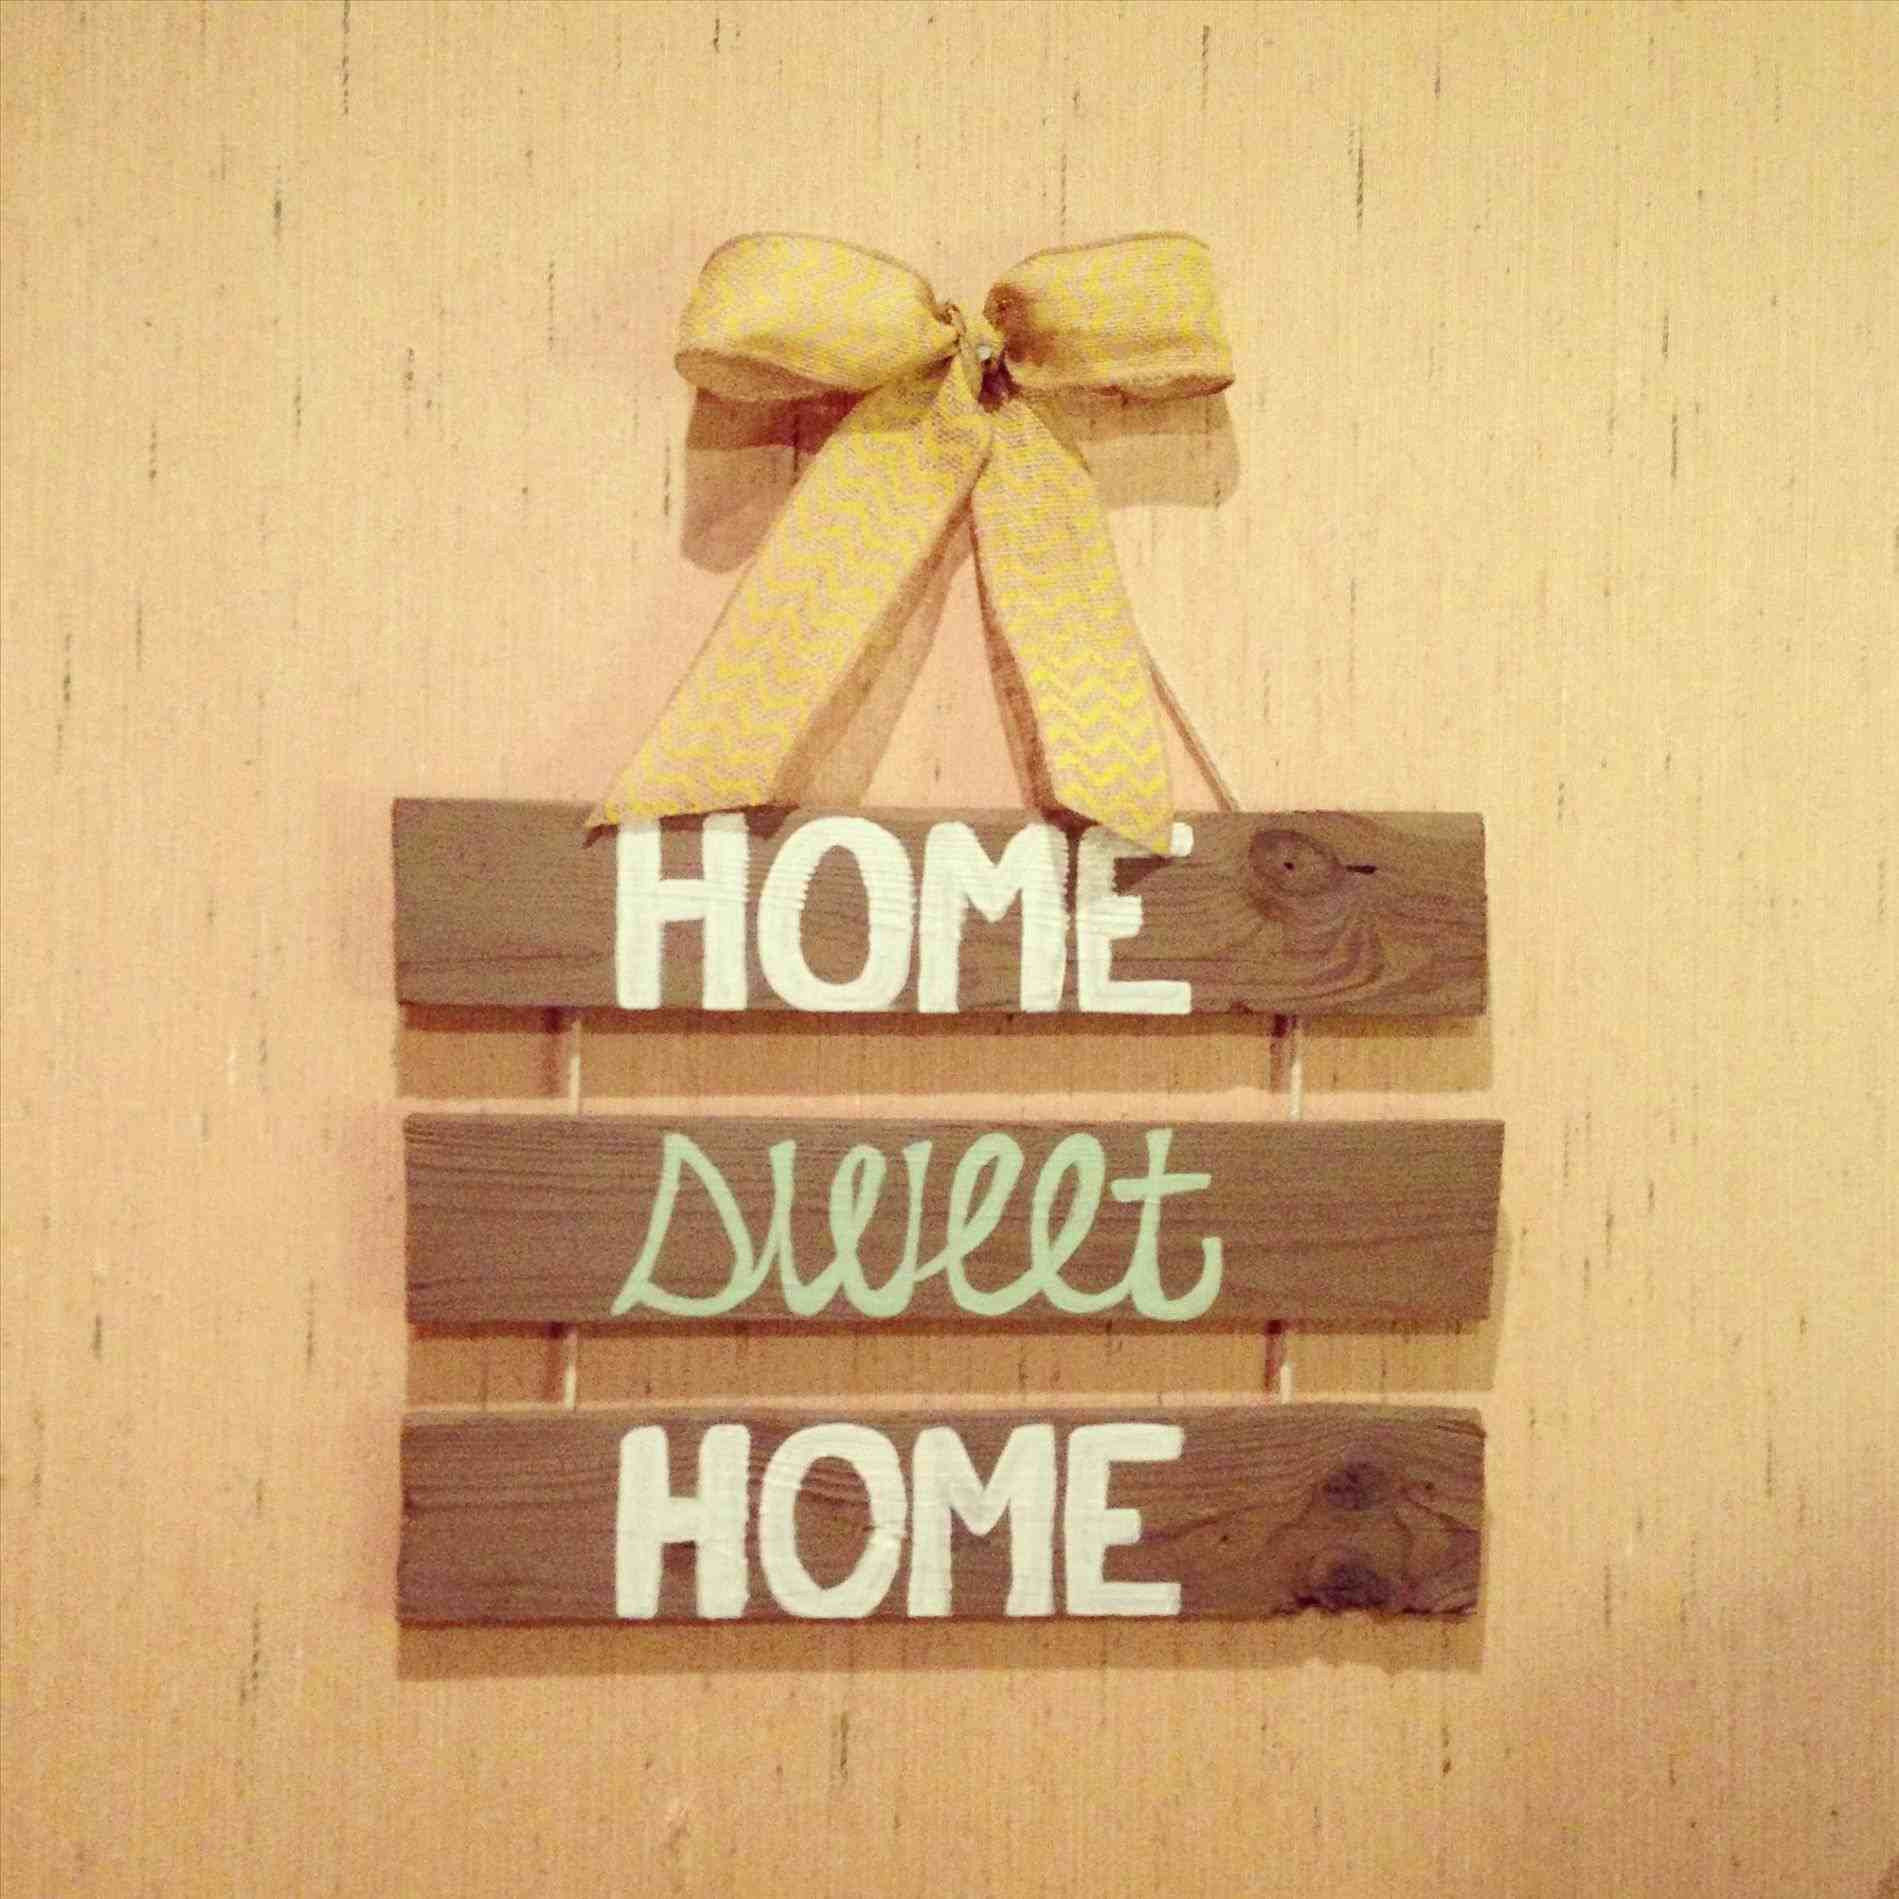 Best ideas about Wood Craft Ideas To Make . Save or Pin Wood Craft Ideas To Make And Sell Now.